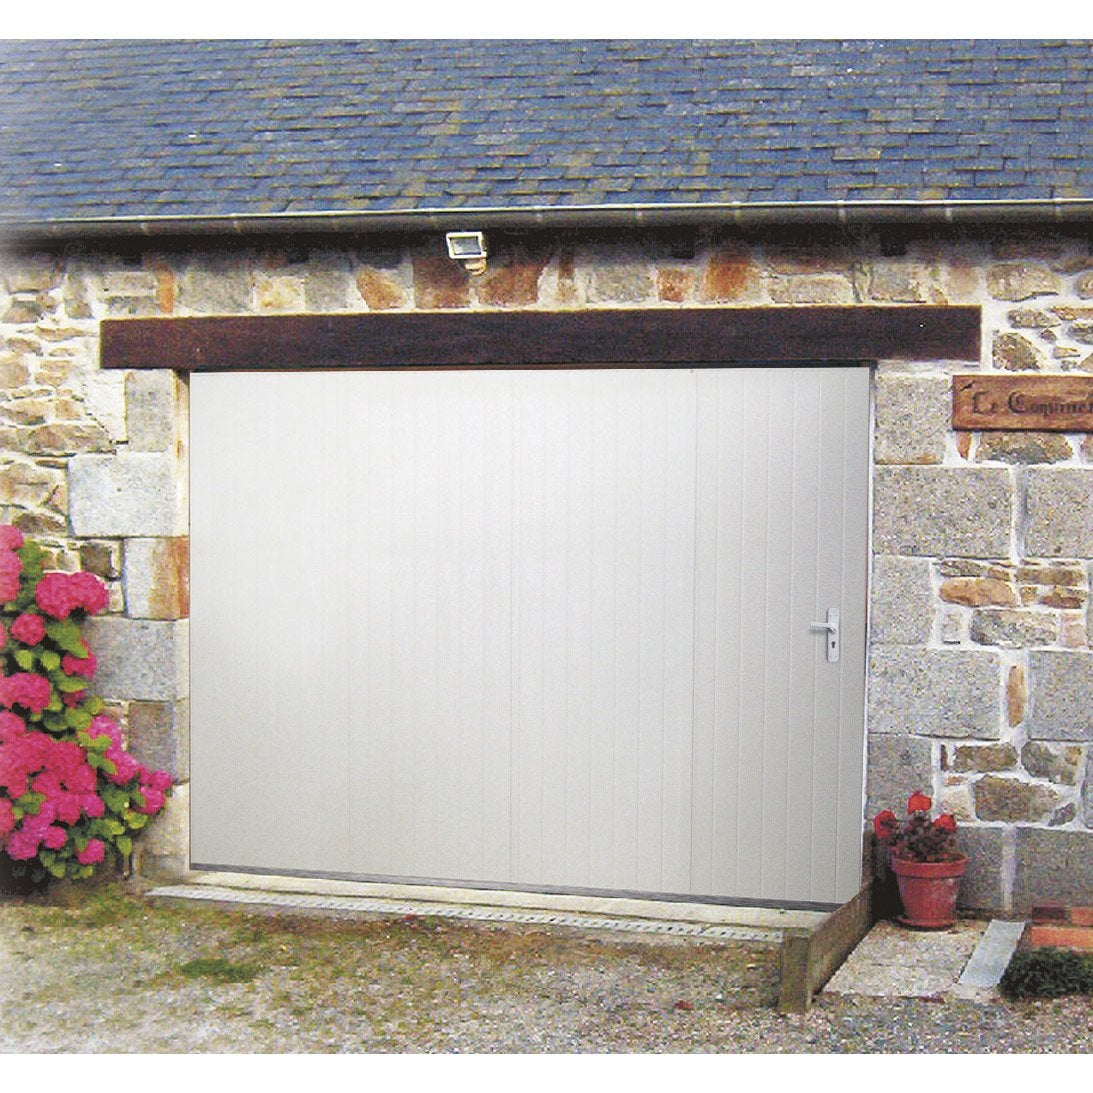 Porte de garage coulissante manuelle artens x for Installer chatiere porte garage